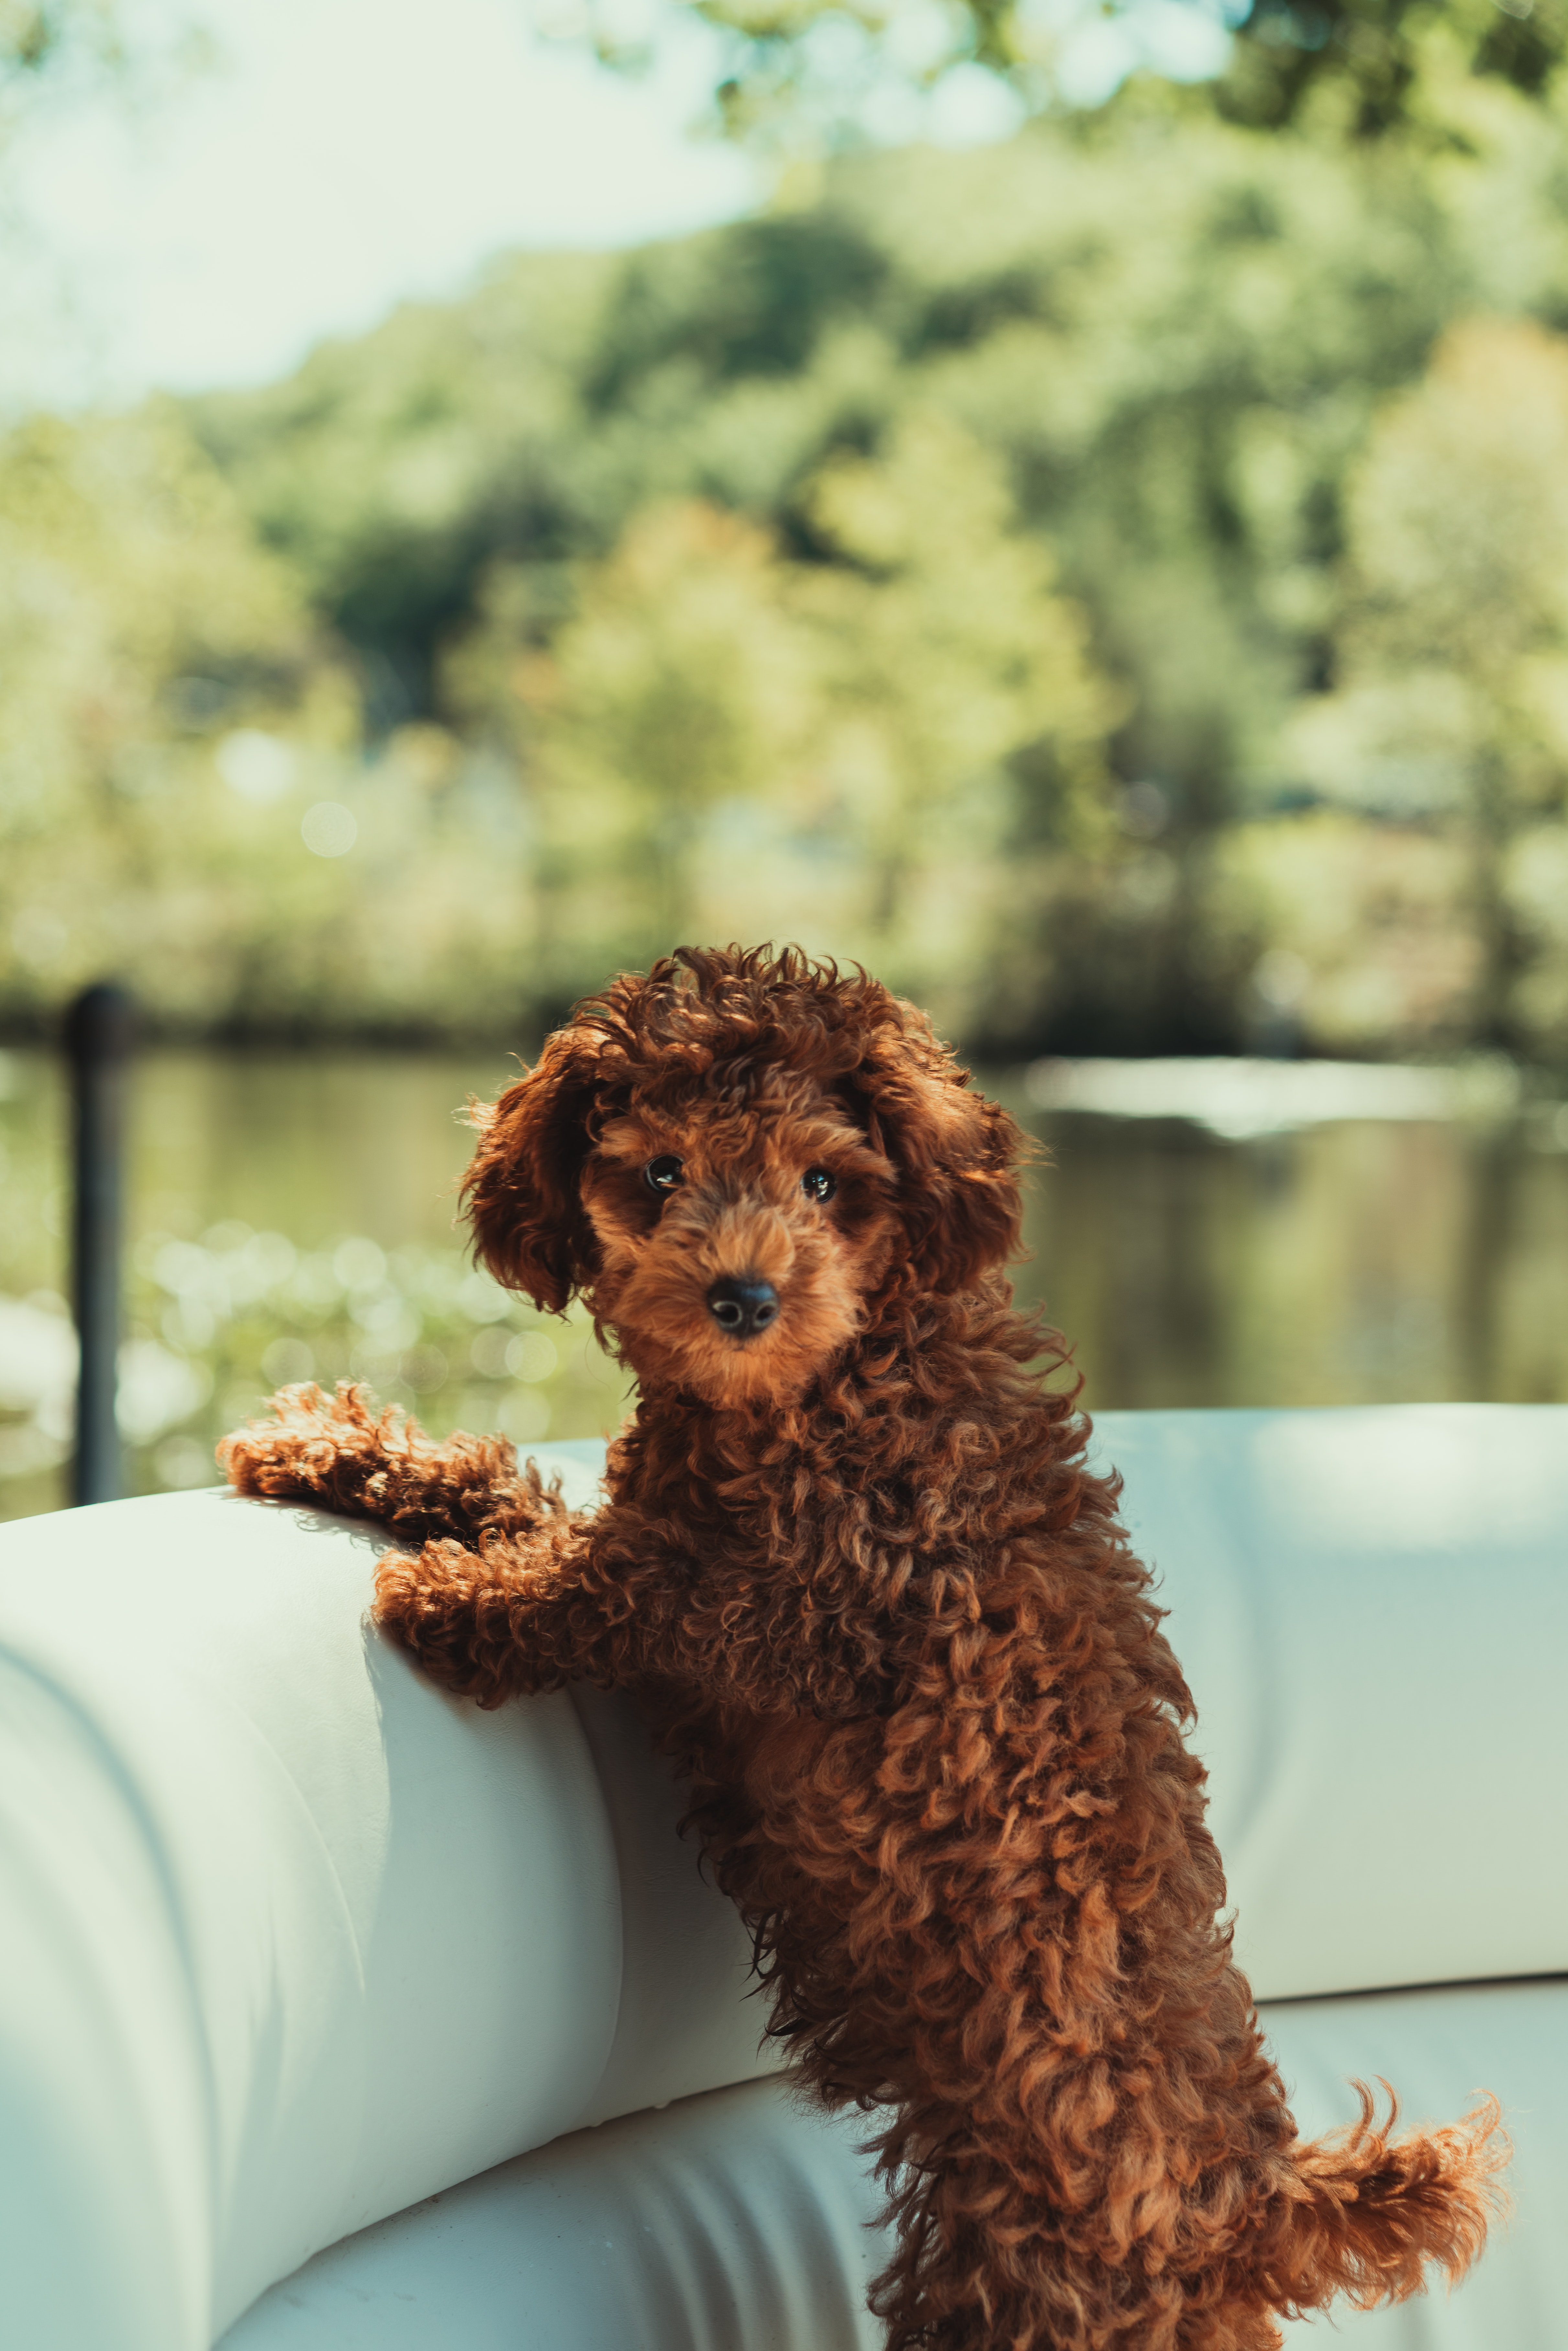 52388 download wallpaper Animals, Puppy, Nice, Sweetheart, Pet, Funny screensavers and pictures for free